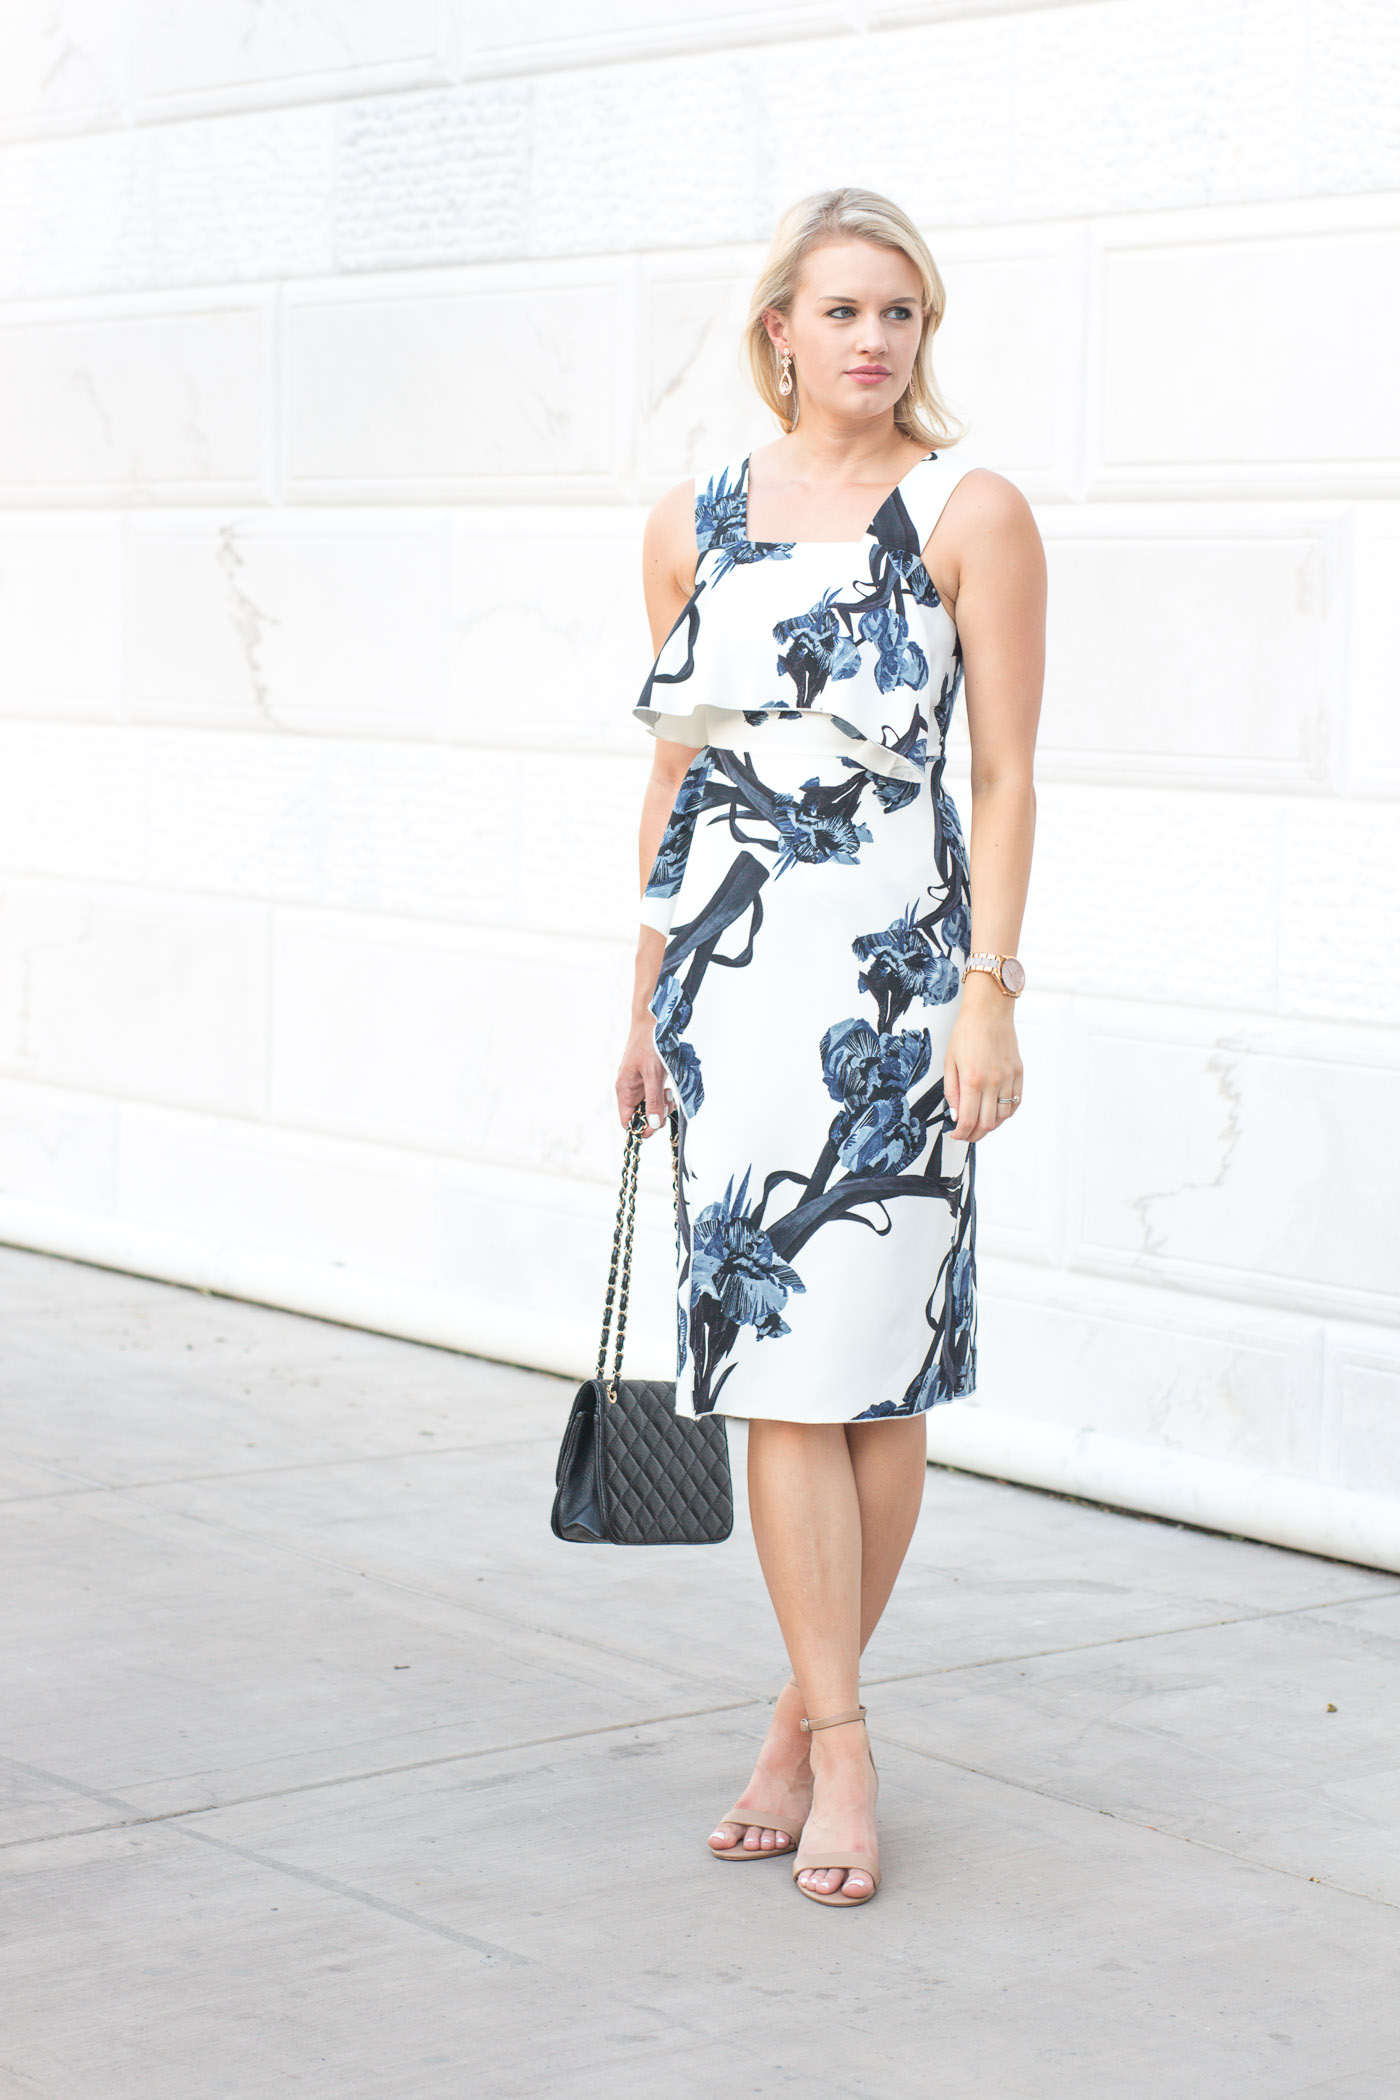 e3c2499f499 Three Summer Dress Trends with Topshop - Treats and Trends